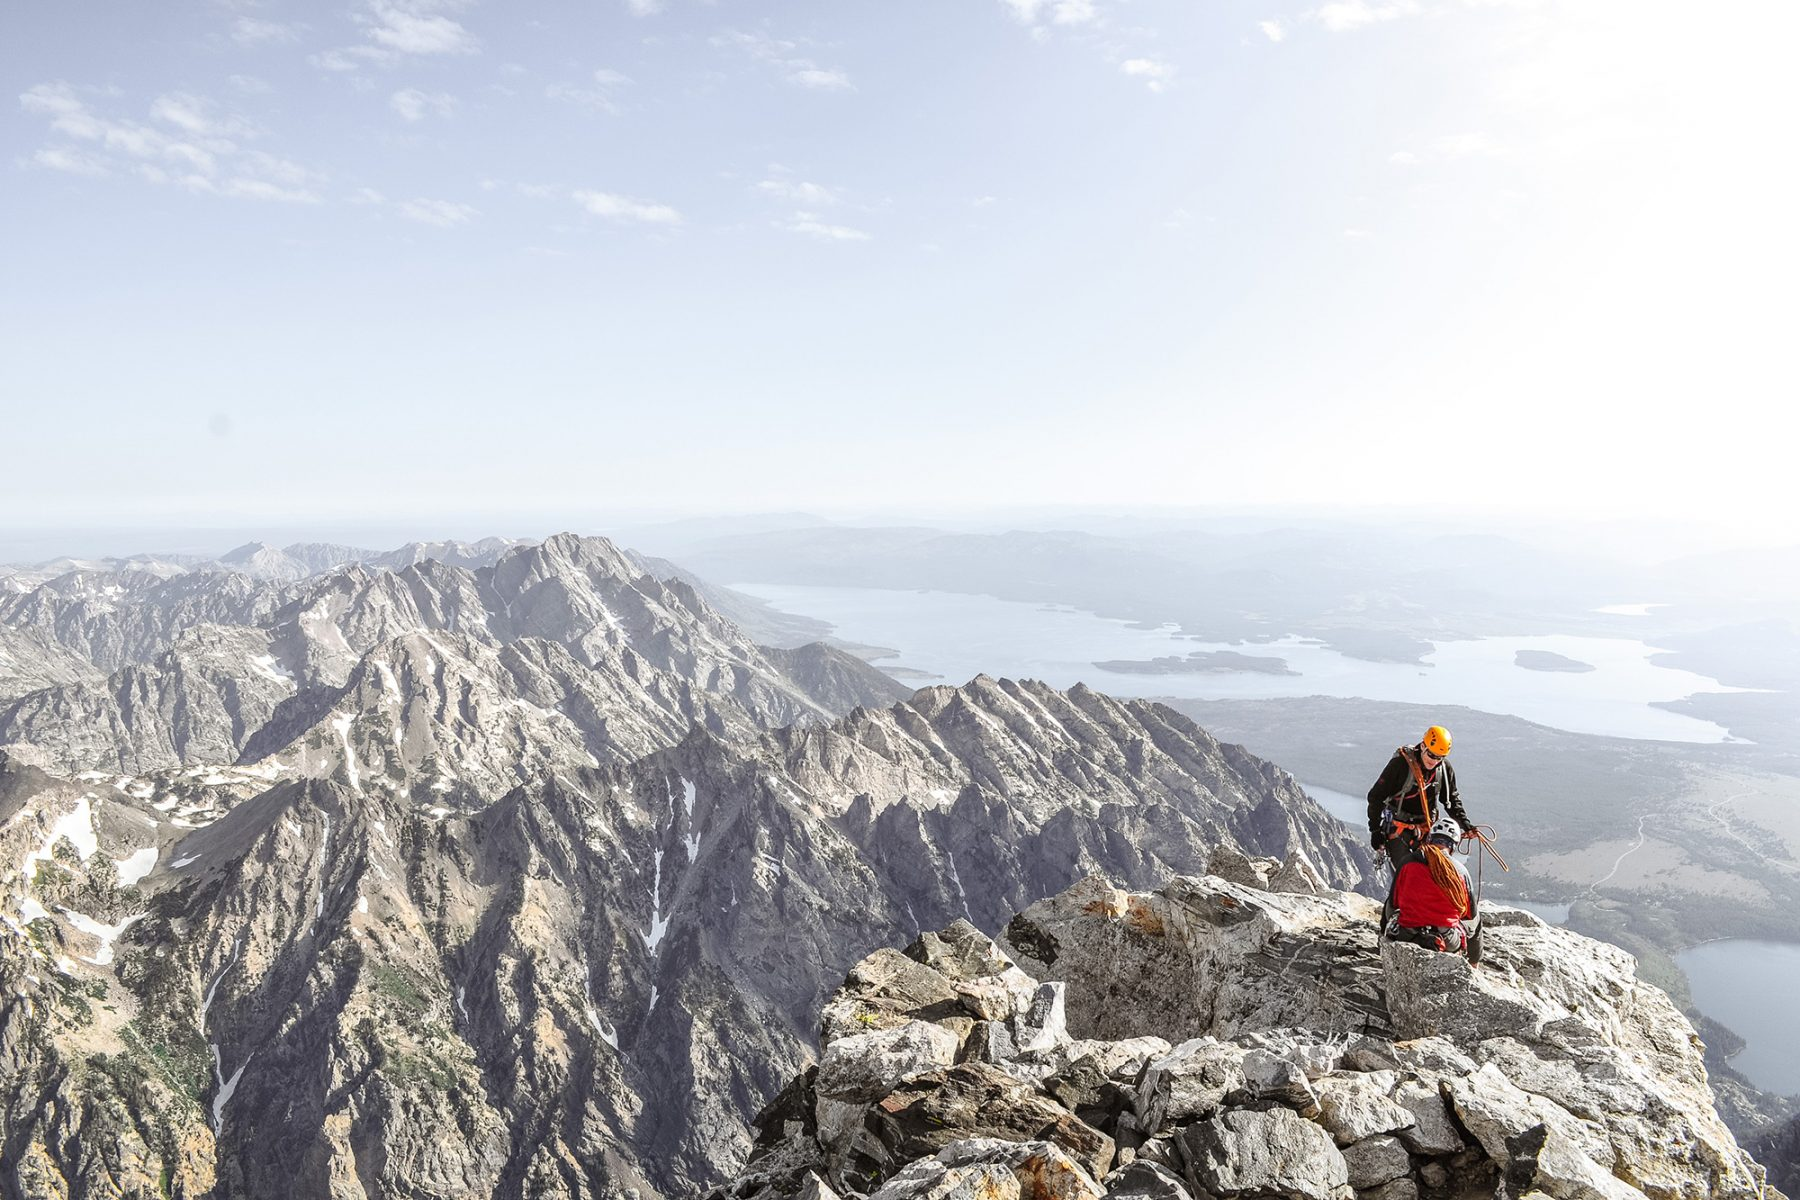 climbers on top of mountain at Grand Teton National Park